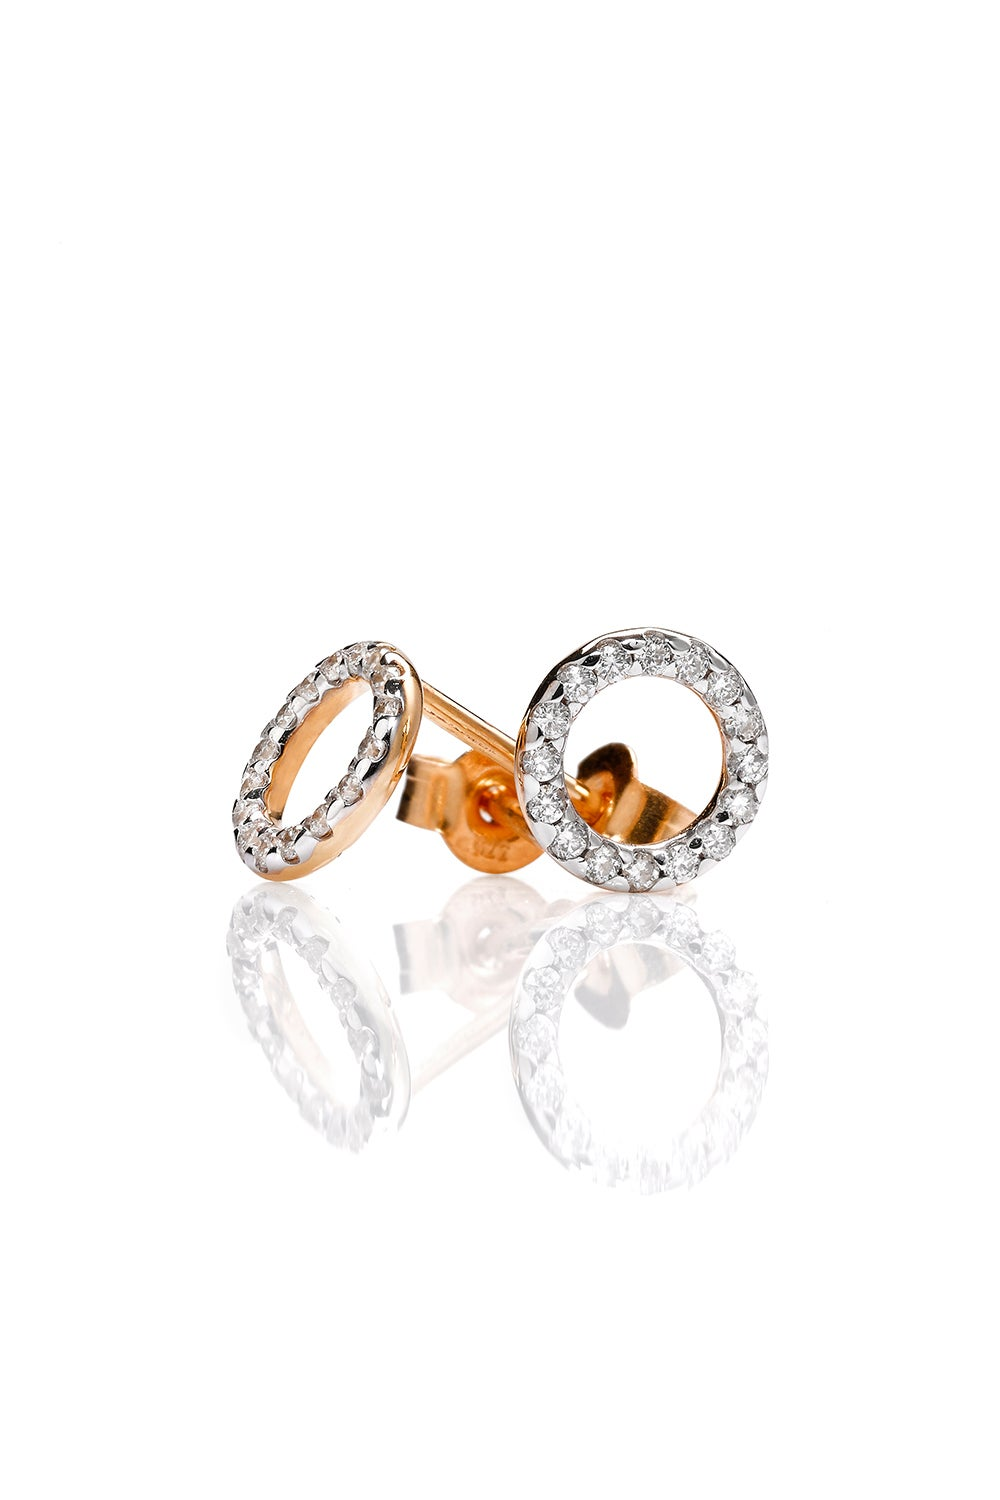 Orbit Diamond Earrings, 9ct Gold, .21ct Diamond